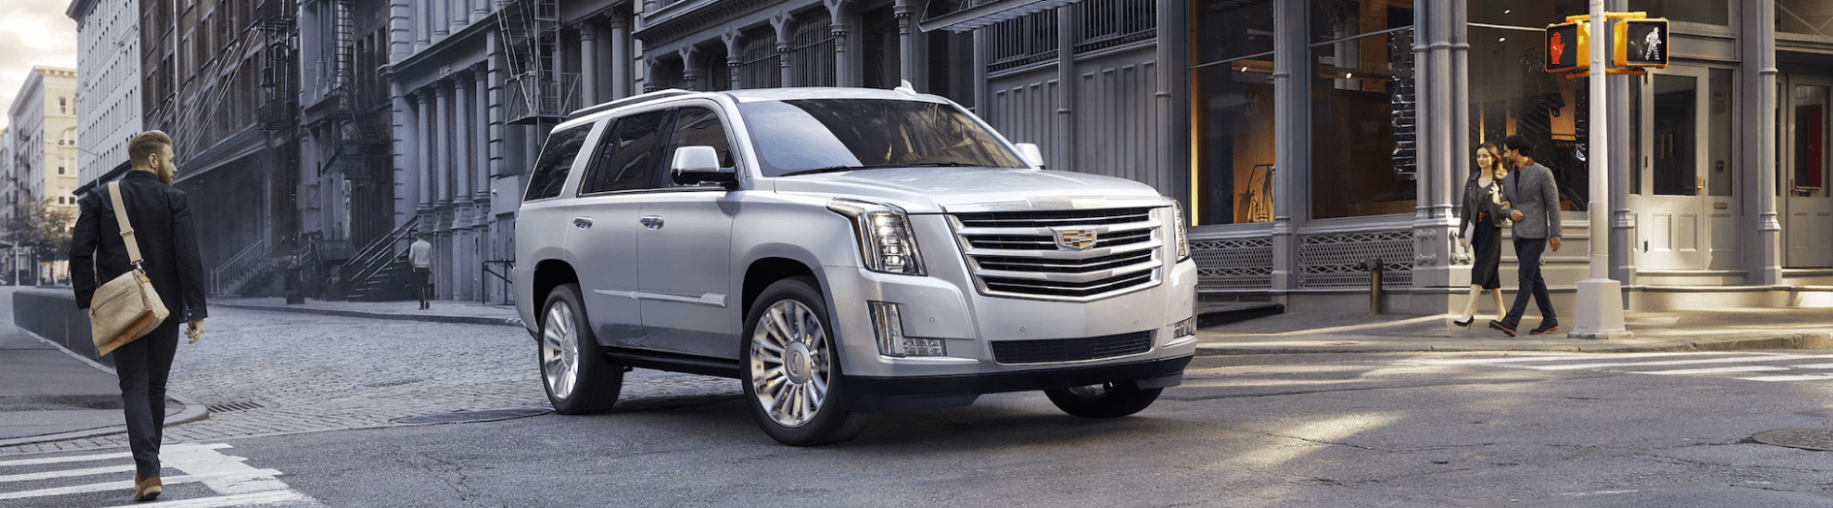 Premium Care Maintenance - Dueck Auto Group - cadillac premium care 2020